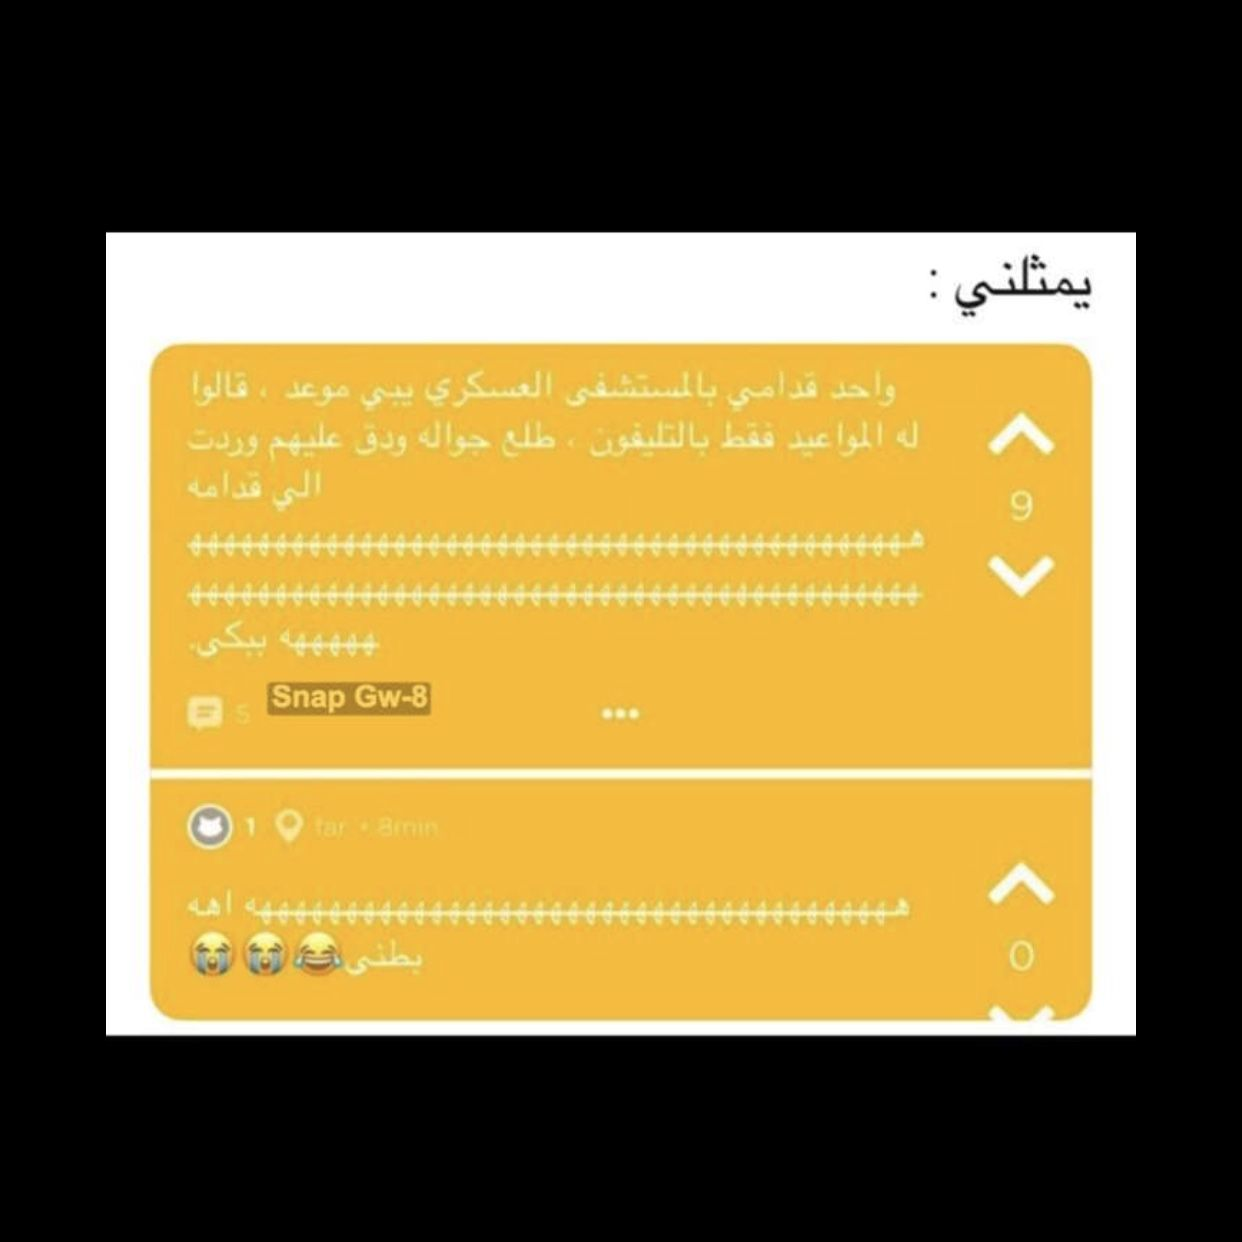 Pin By J 82 On نكت Wisdom Quotes Life Arabic Funny Iphone Wallpaper Quotes Love